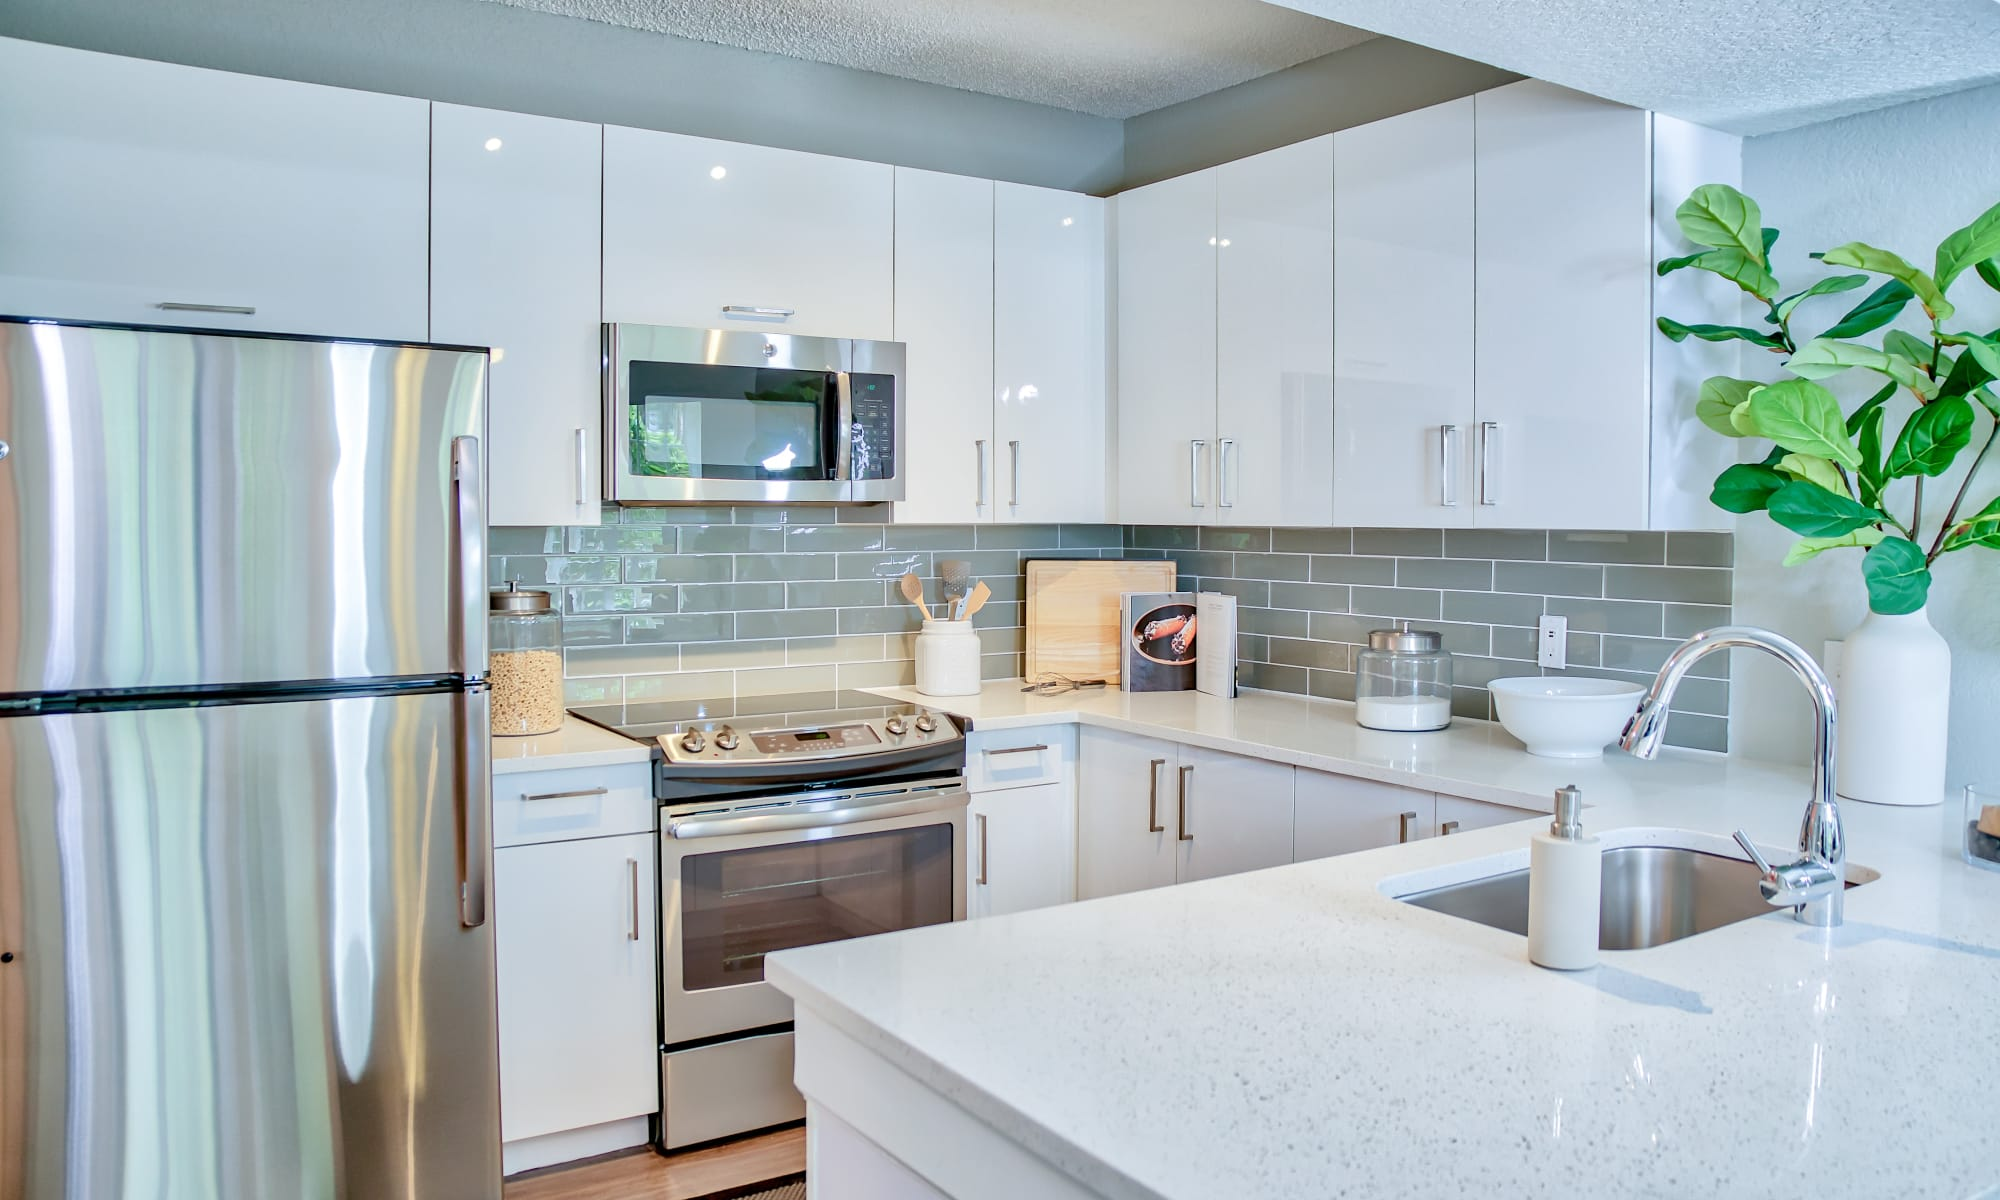 Modern Kitchen at The Sophia at Abacoa | Luxury Apartments in Jupiter, Florida